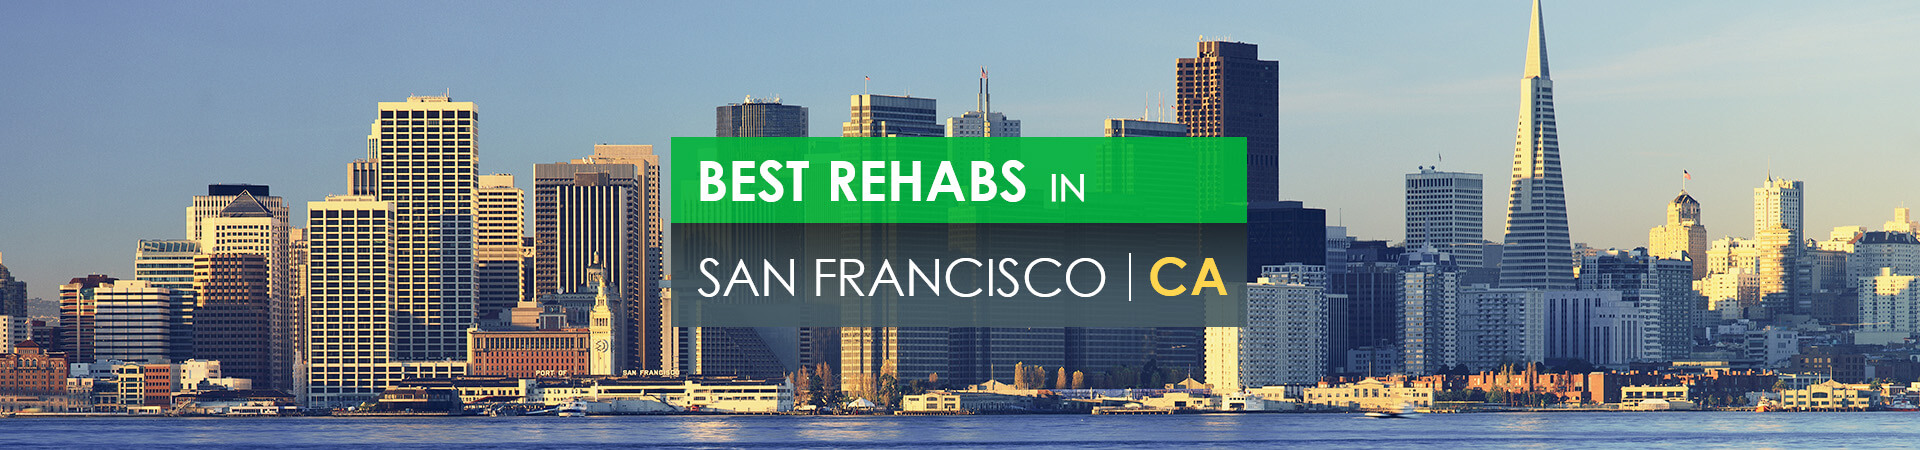 Best rehabs in San Francisco, CA